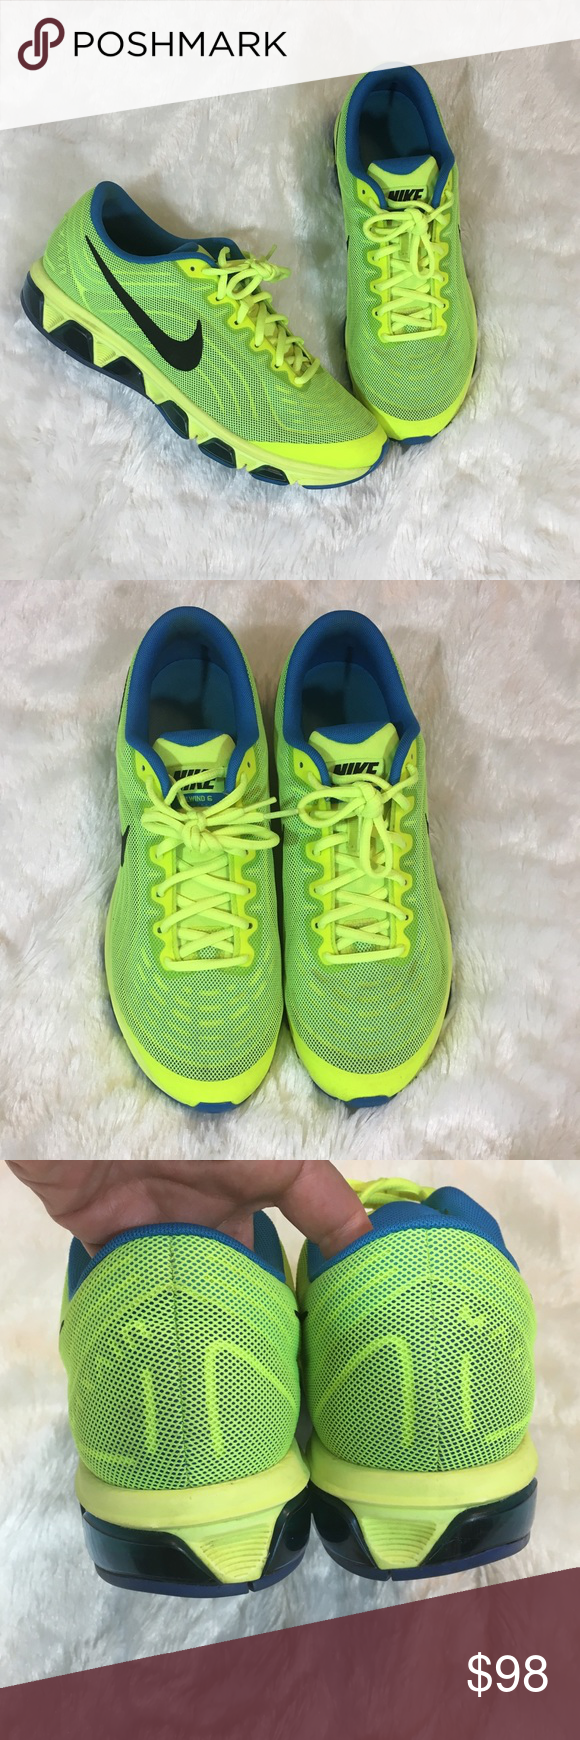 huge selection of cfd0a 25e88 🆕Men s Nike Air Max Tailwind 6 Neon Men s Nike Air Max Tailwind 6. In  bright neon green yellow. In excellent preloved condition. Size 11.5. No  box.